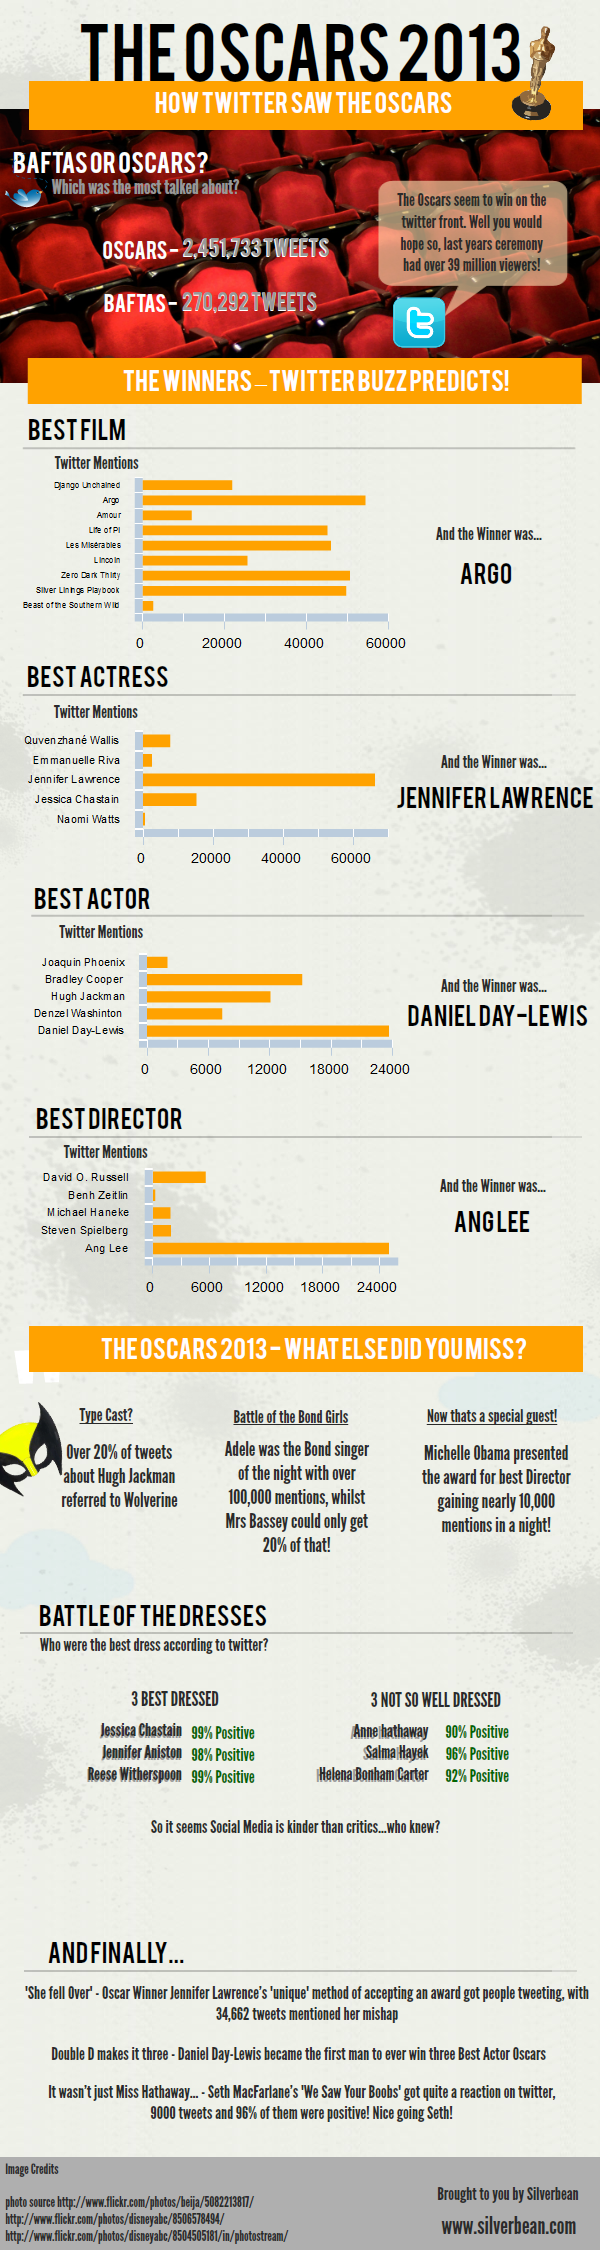 How Twitter Saw The Oscars 2013